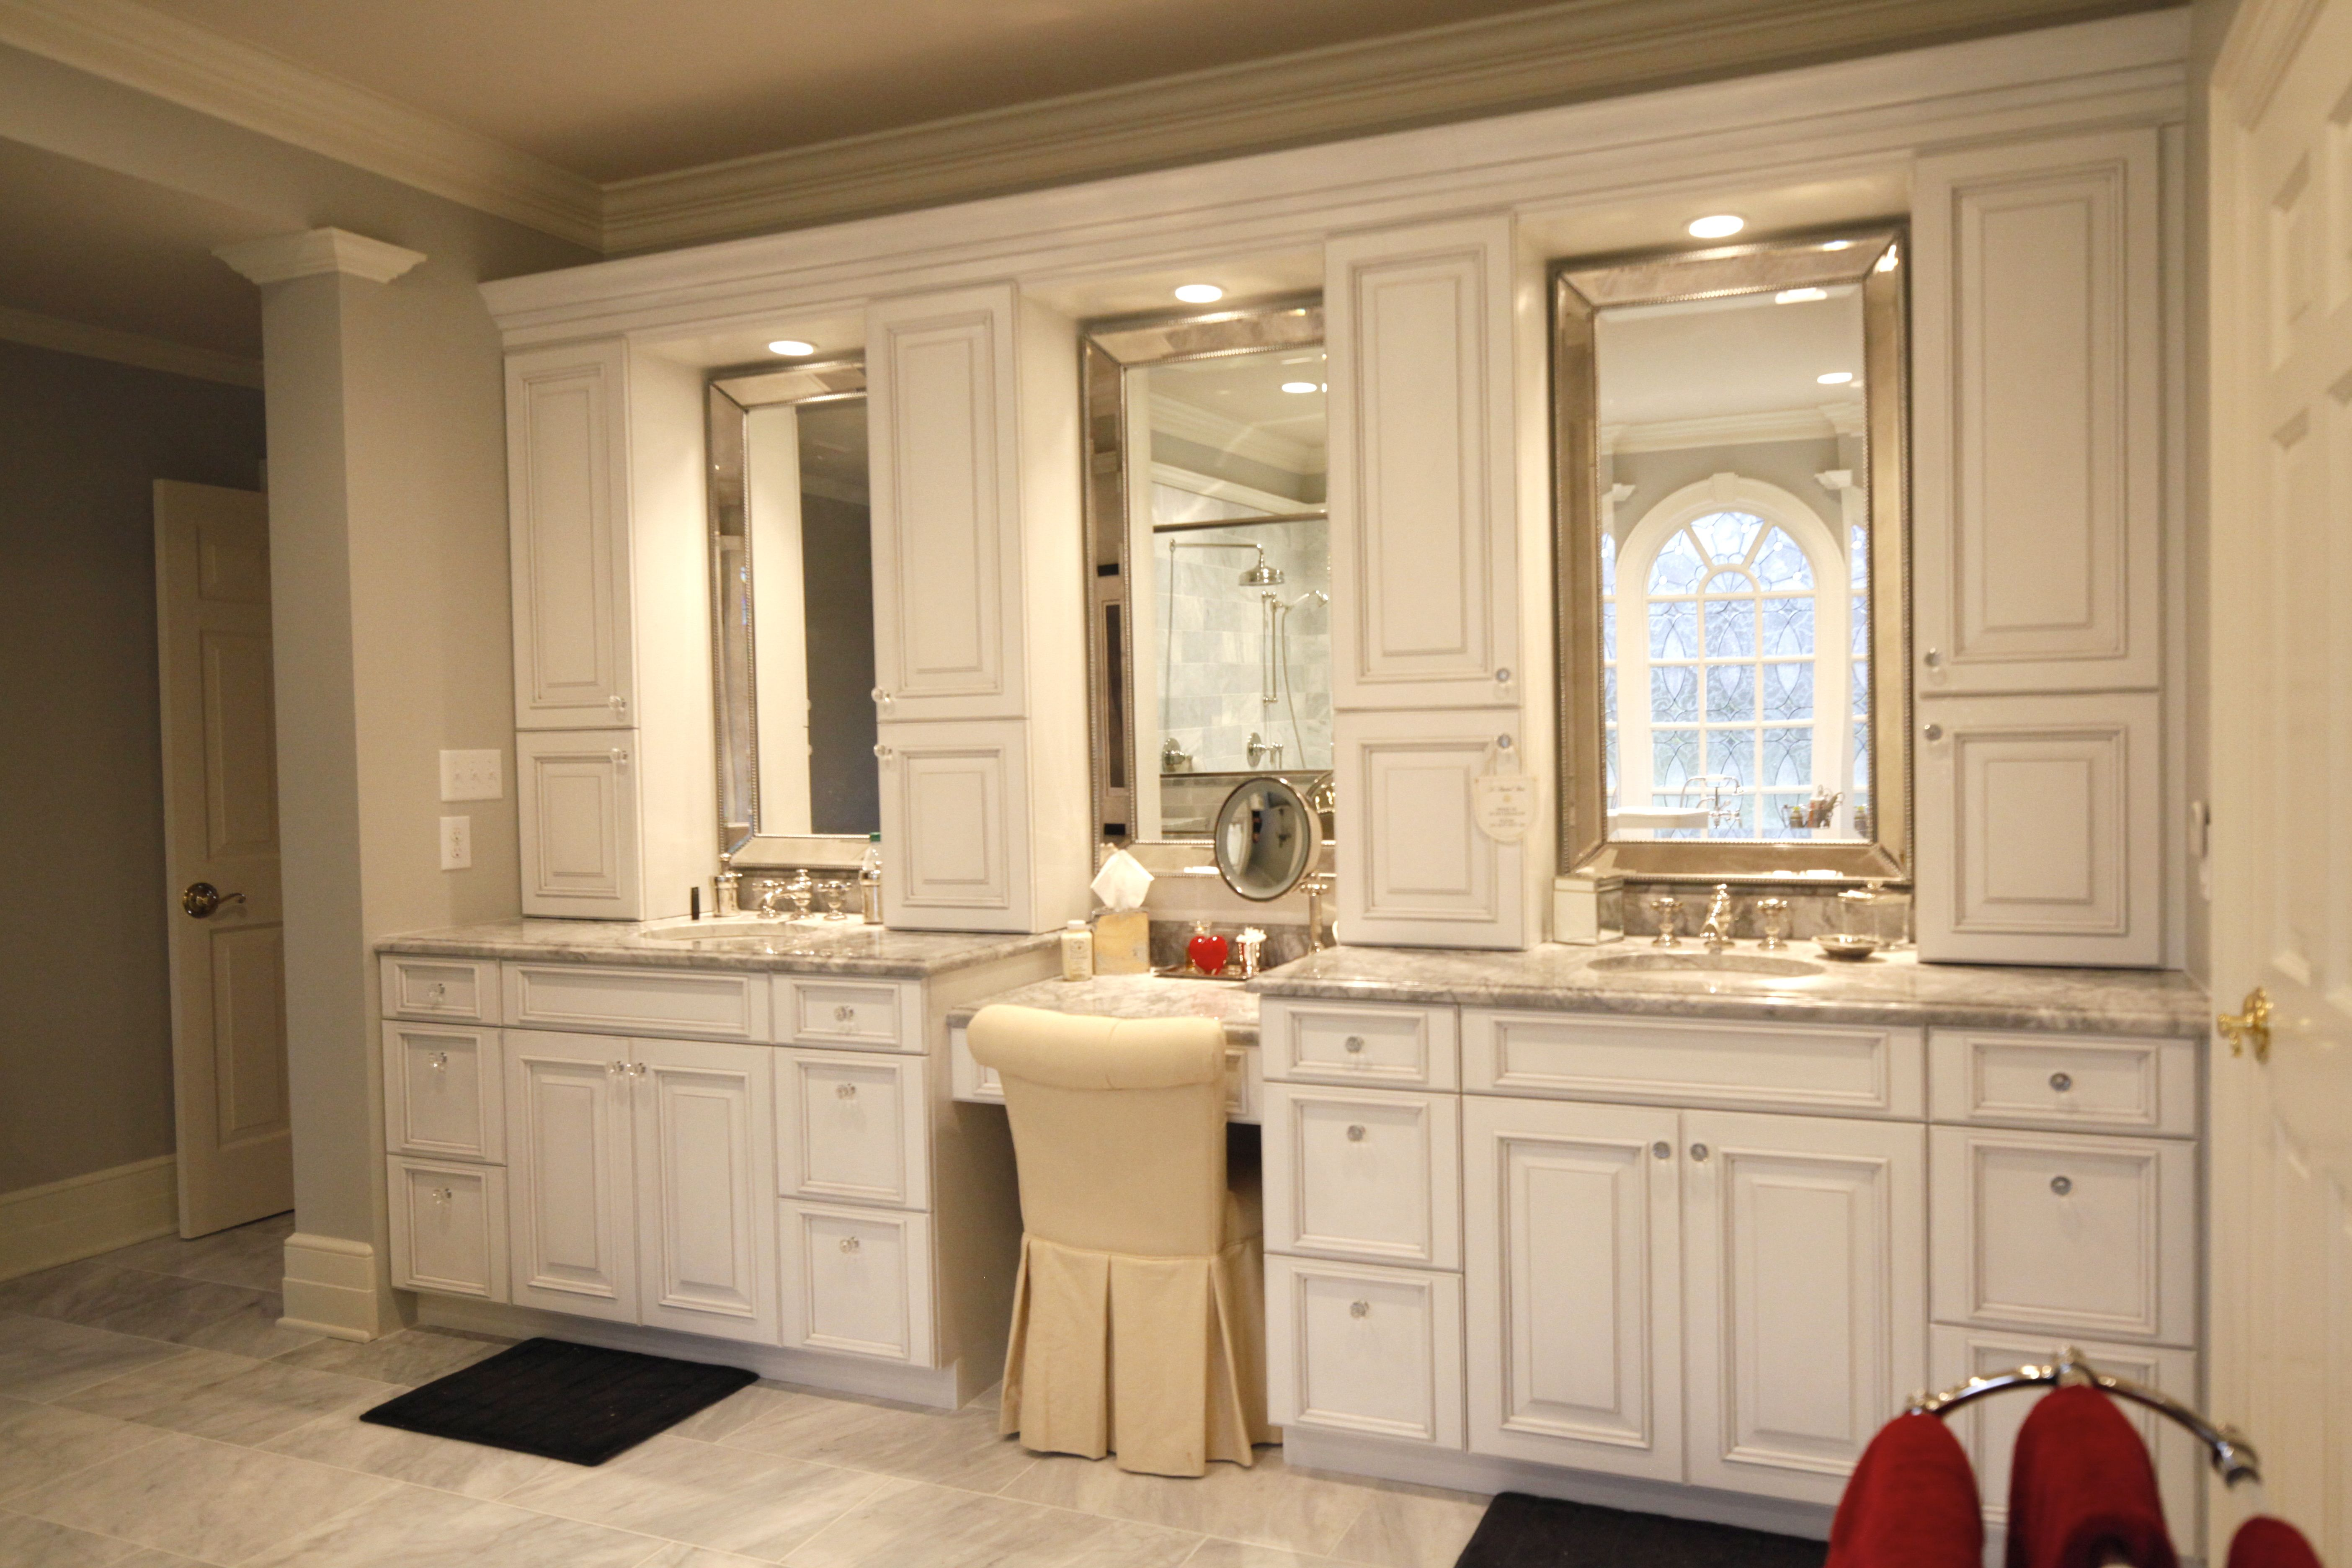 Holiday Kitchens Cabinets In Nordic White With A Matte Pewter Wash Featuring A Newcastle Door